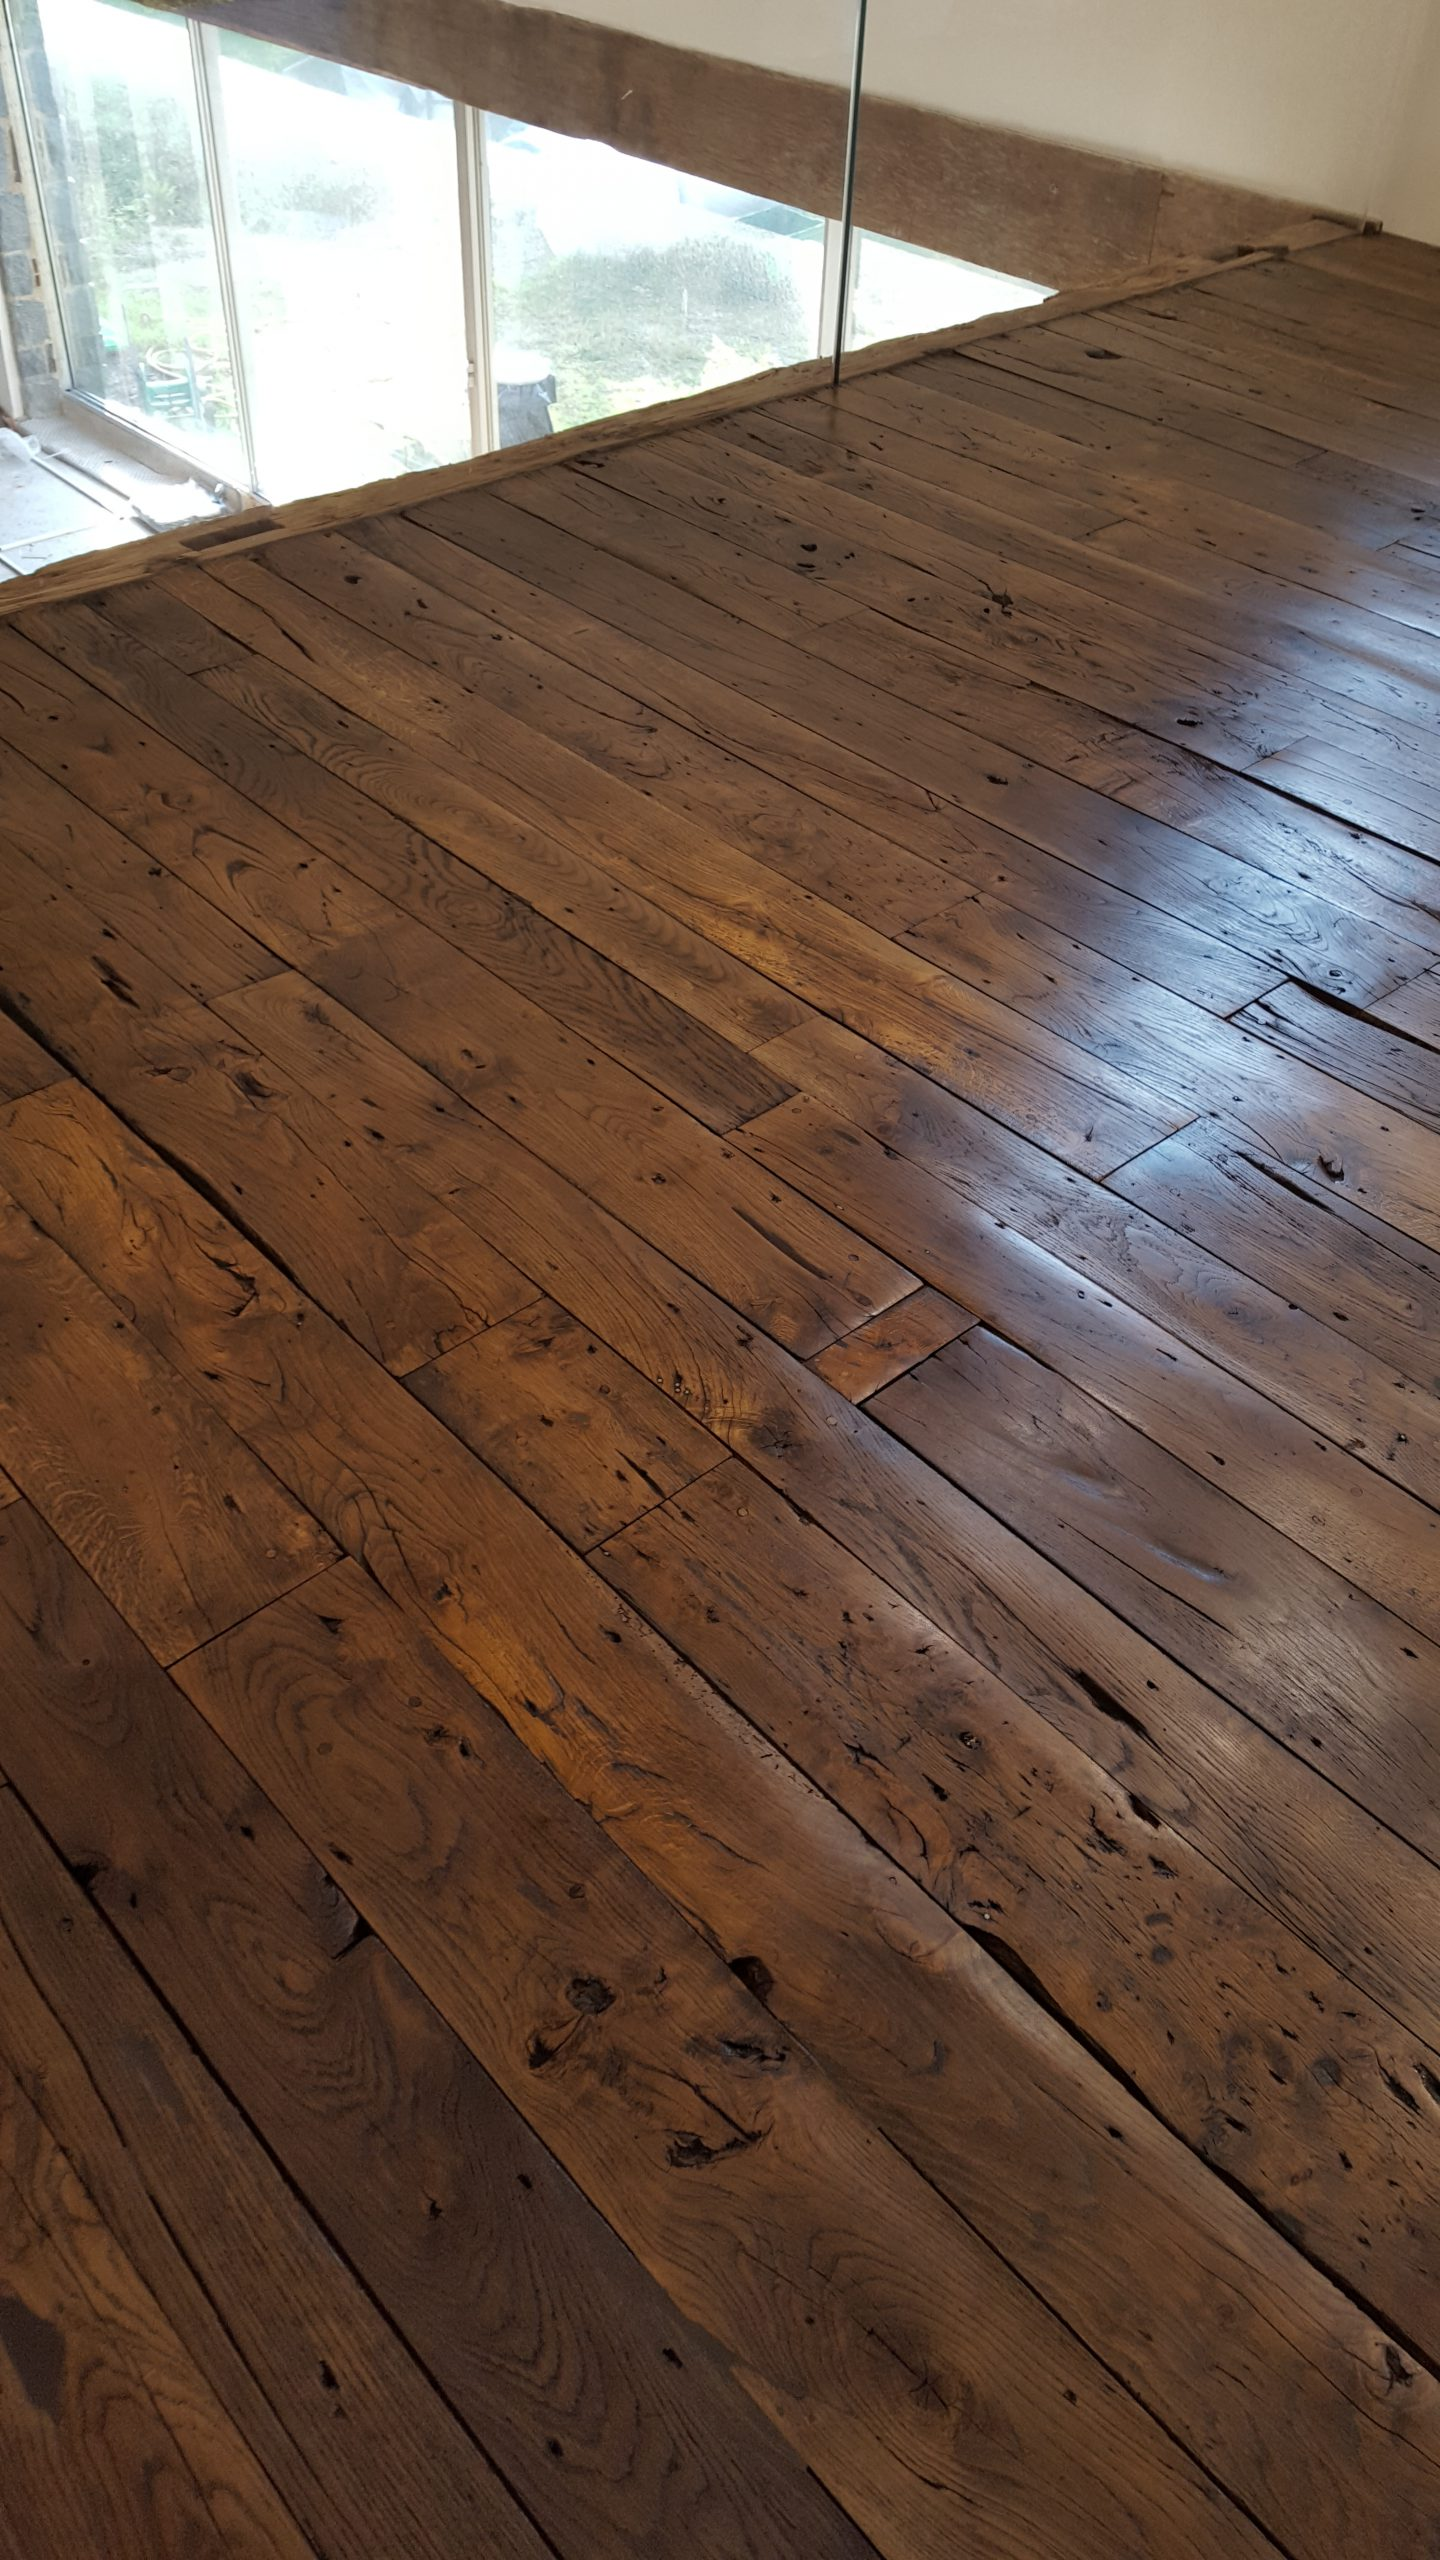 Beautiful reclaimed French oak floorboards shellacked and waxed